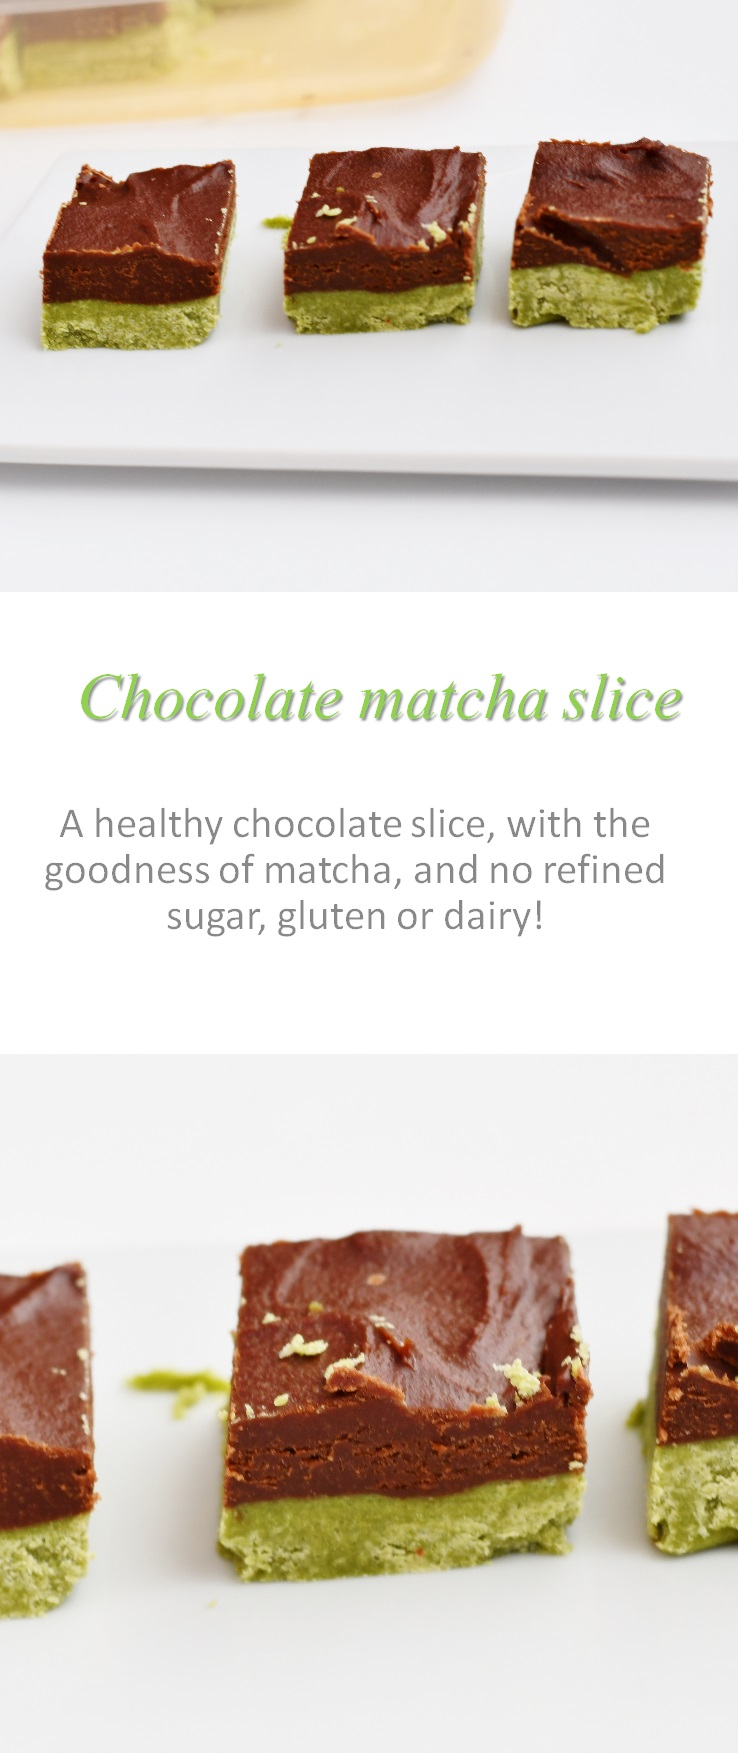 Using the extra goodness of the superfood matcha, this chocolate matcha slice is a match(a) made in heaven! #matcha